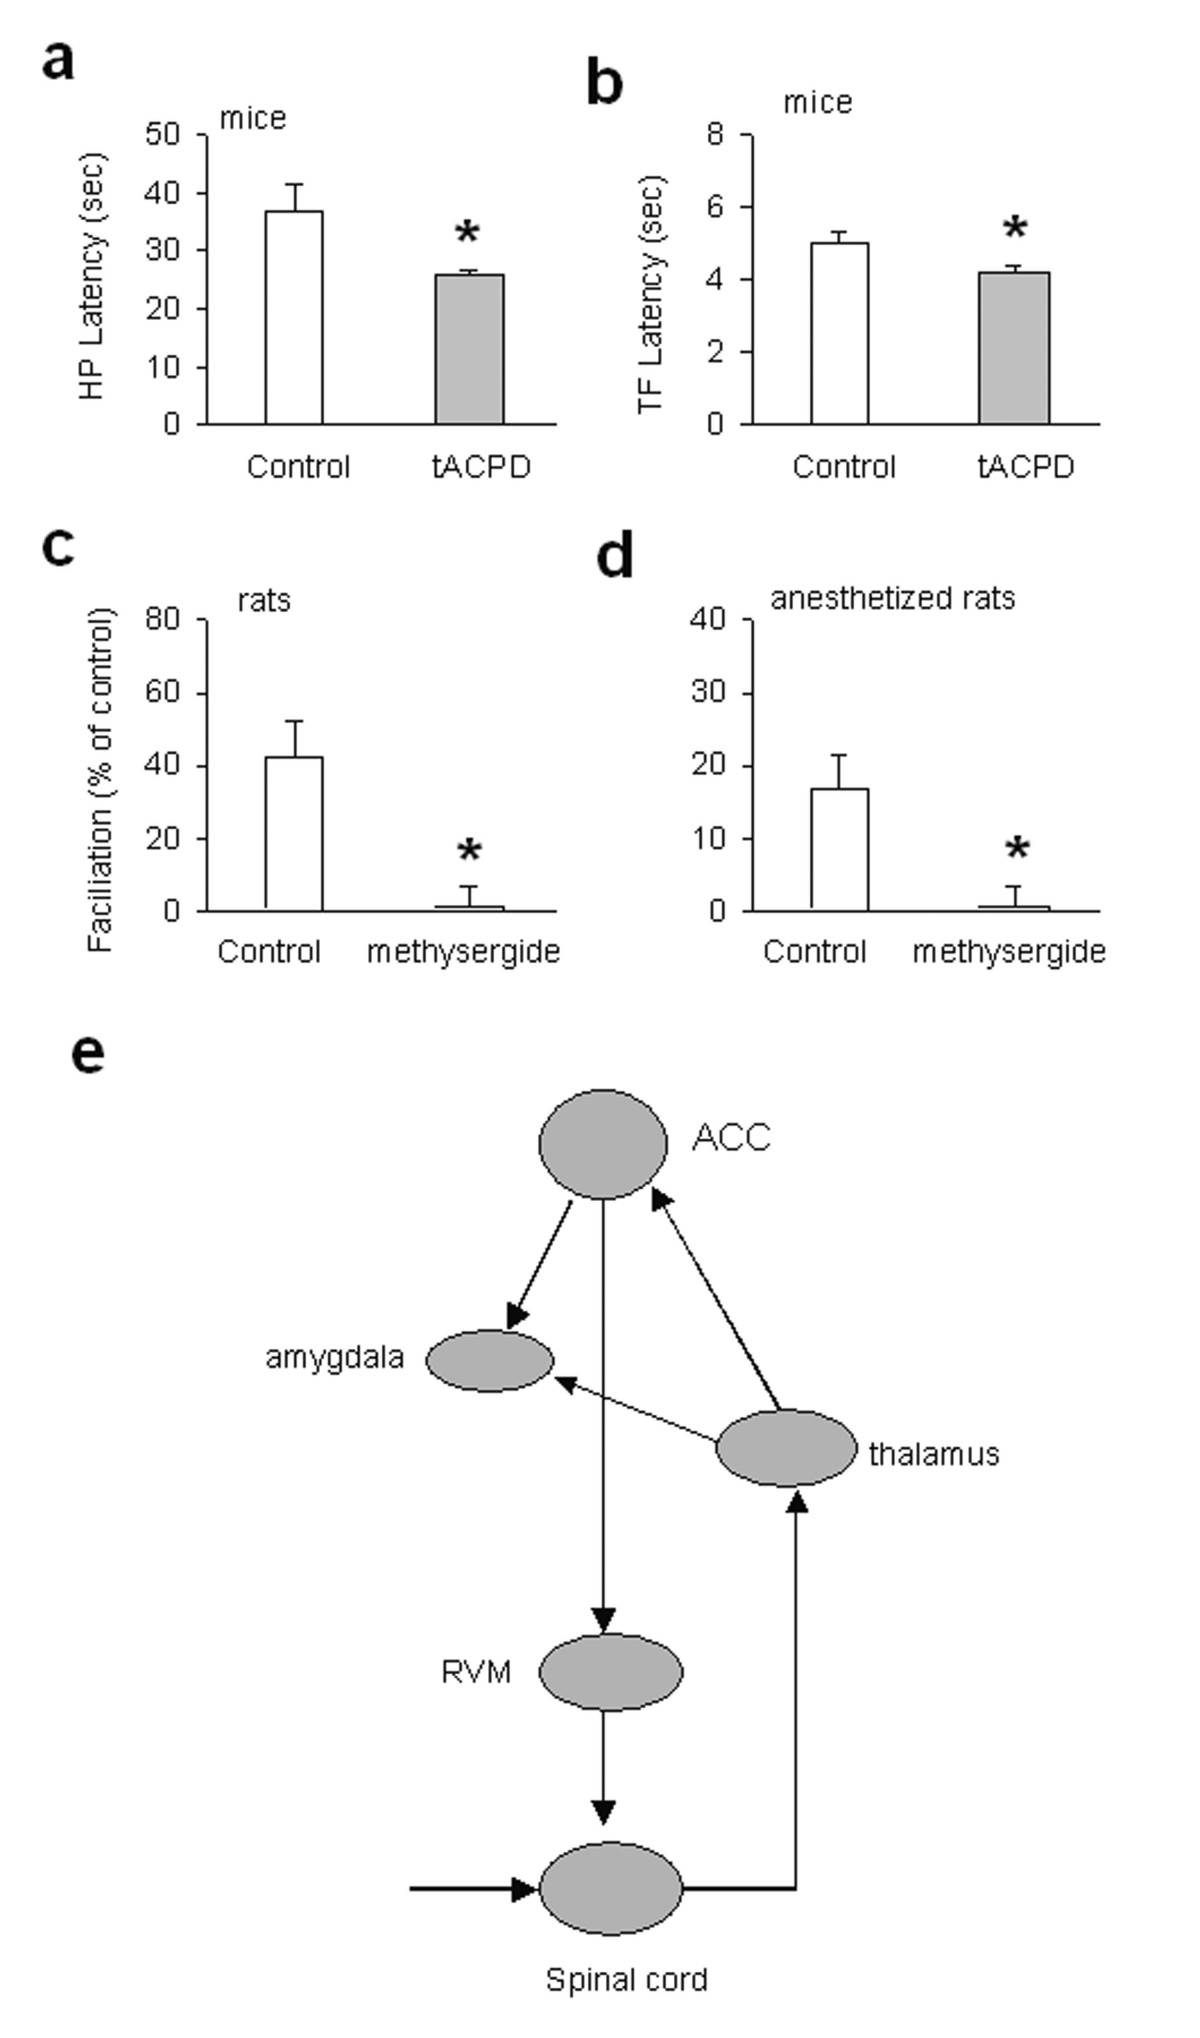 http://static-content.springer.com/image/art%3A10.1186%2F1744-8069-1-6/MediaObjects/12990_2004_Article_6_Fig8_HTML.jpg